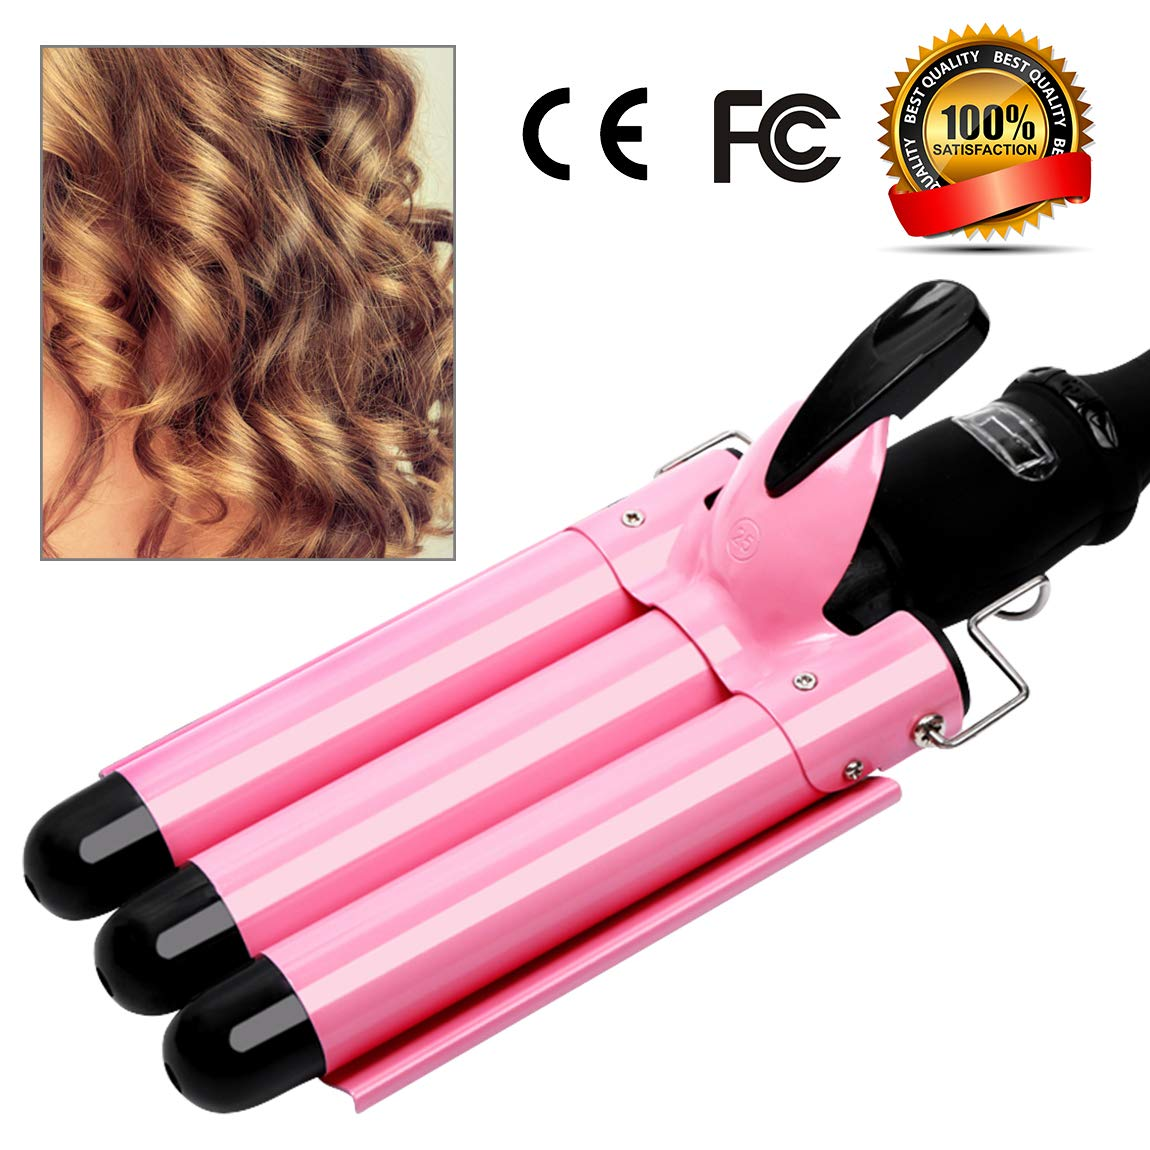 3 Barrel Curling Iron Hot Tools Curling Iron Fast Heating Ceramic Hair Waver Curler 25mm Hair Curling Wand (style2) by Garne-T